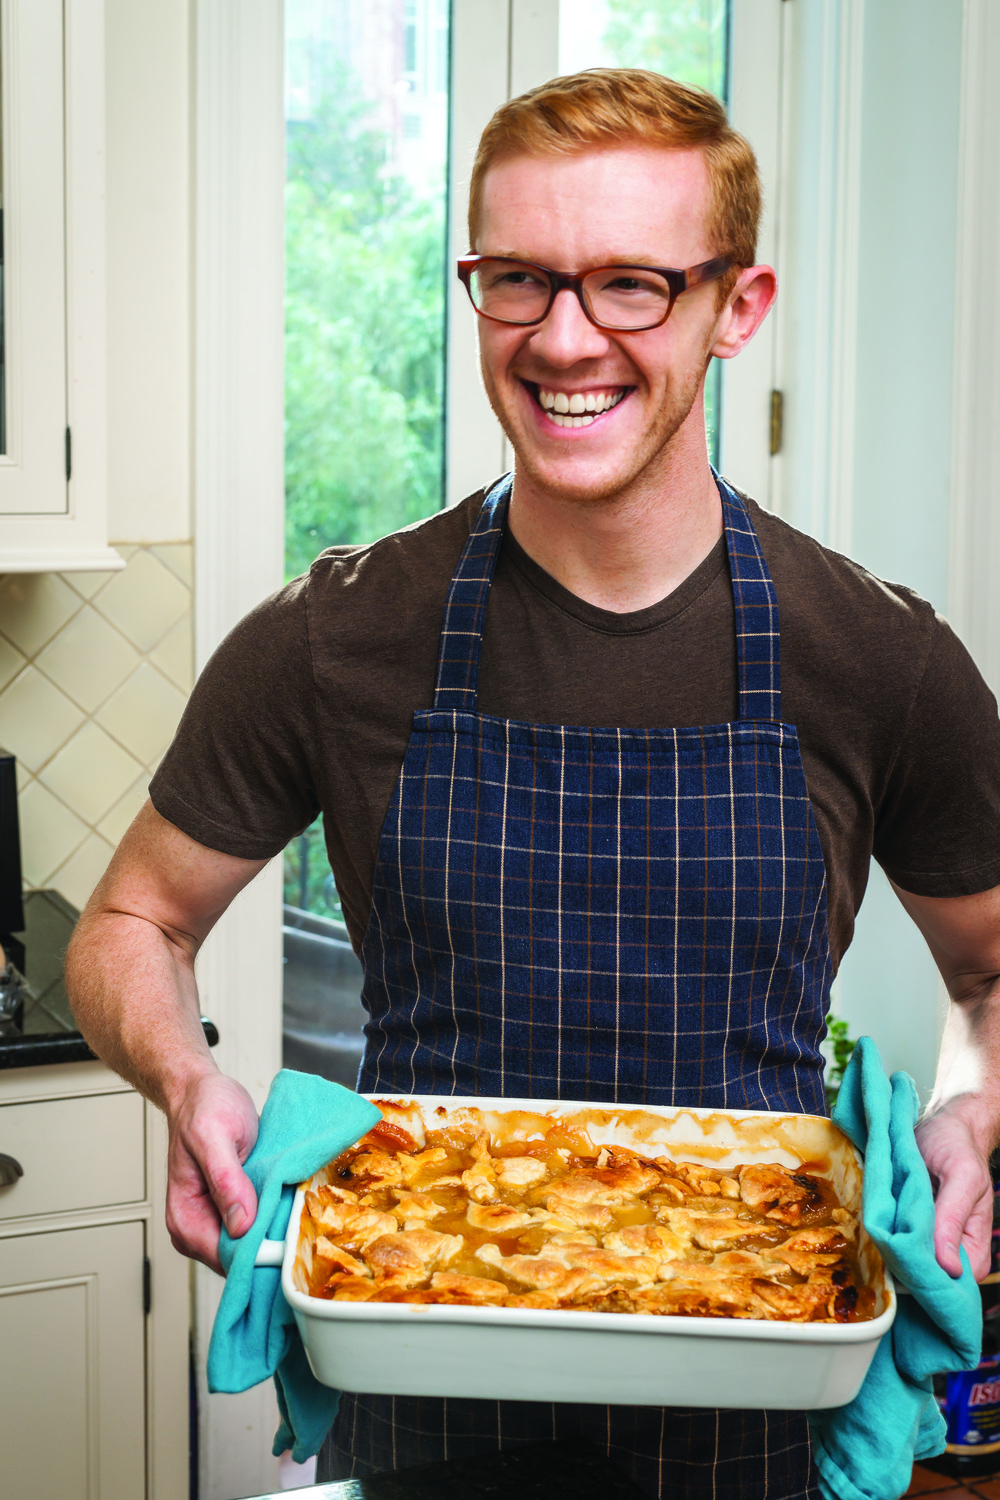 About ben mims im a food writer cookbook author and recipe developer ive formerly worked as the test kitchen director at lucky peach magazine food editor at saveur forumfinder Gallery